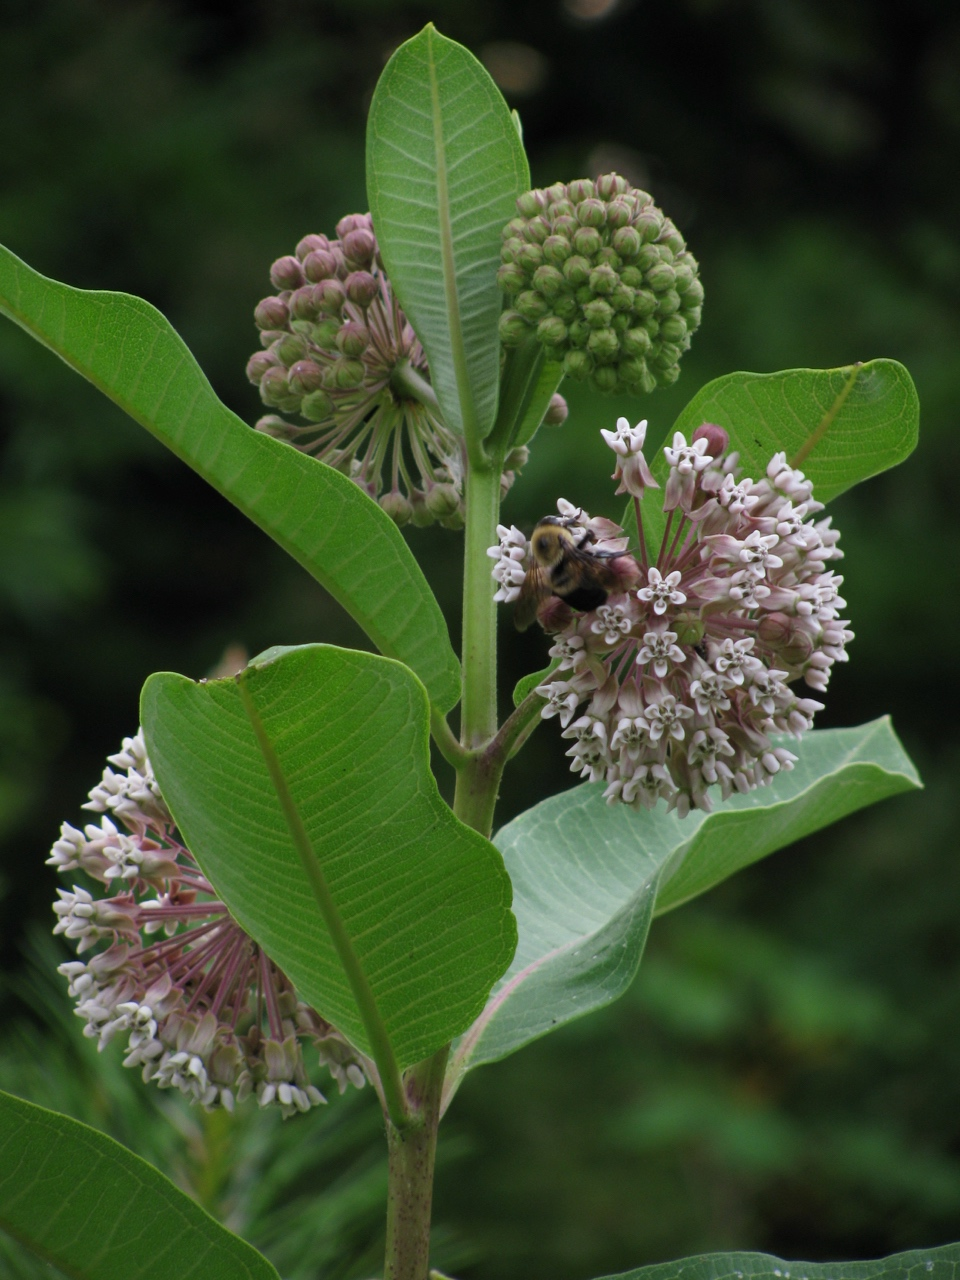 The Scientific Name is Asclepias syriaca. You will likely hear them called Common Milkweed. This picture shows the In full glory! Has a wonderful fragrance too. of Asclepias syriaca